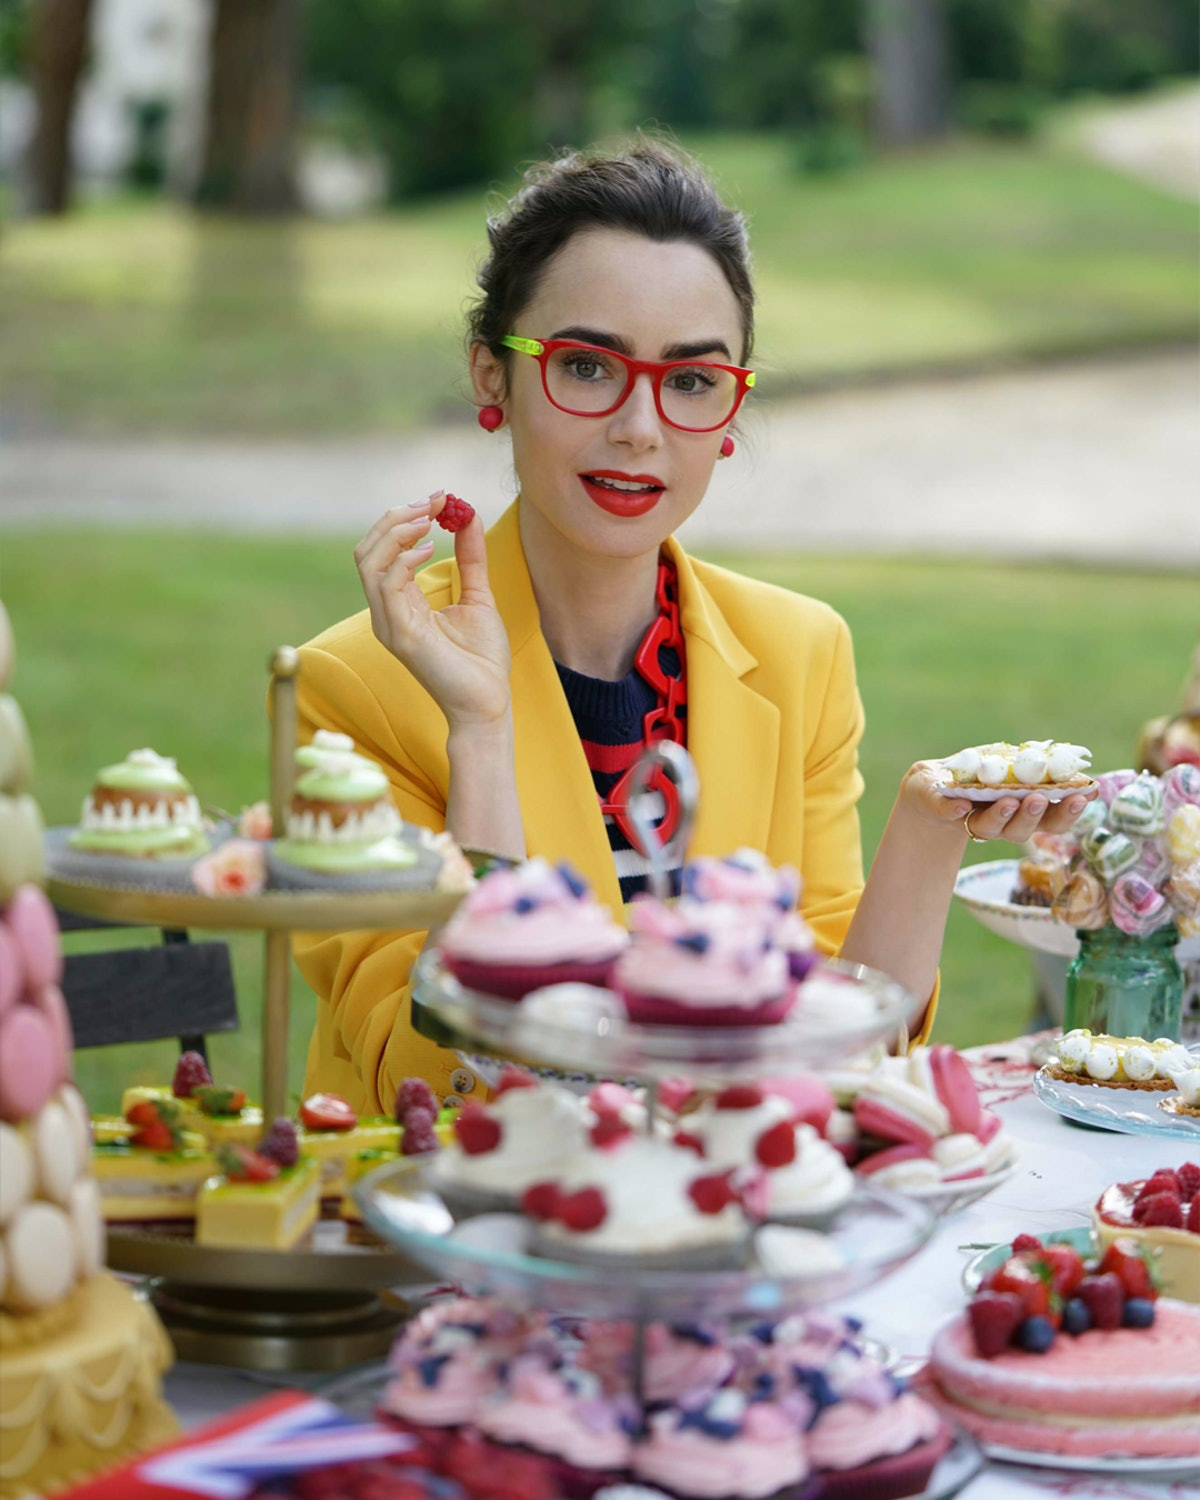 Lily Collins as Prue Leith from The Great British Baking Show